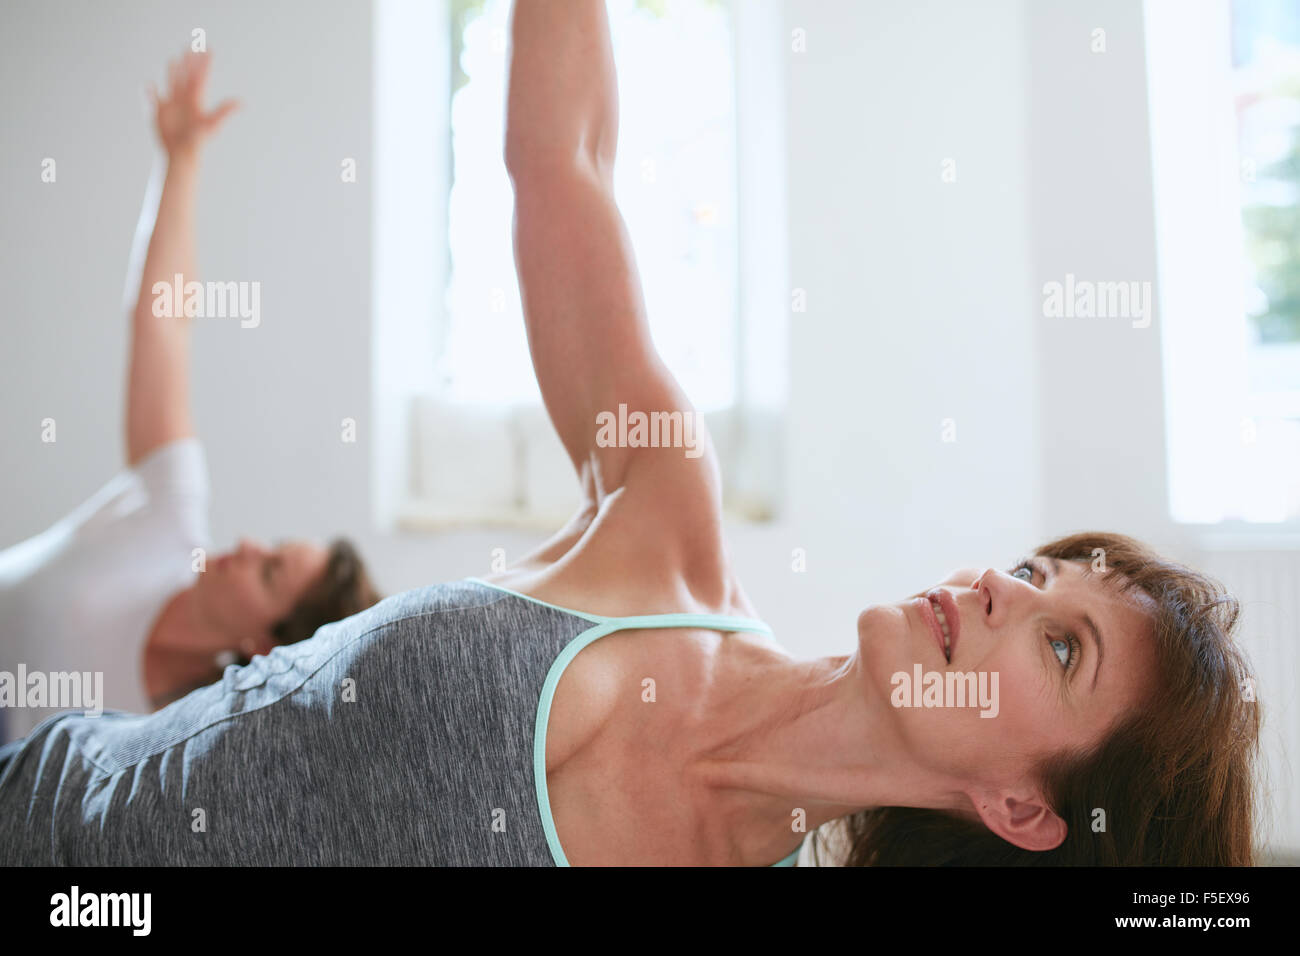 Portrait of a fit mature woman performing a yoga routine at gym. Bending over and looking away with her arms outstretched. - Stock Image